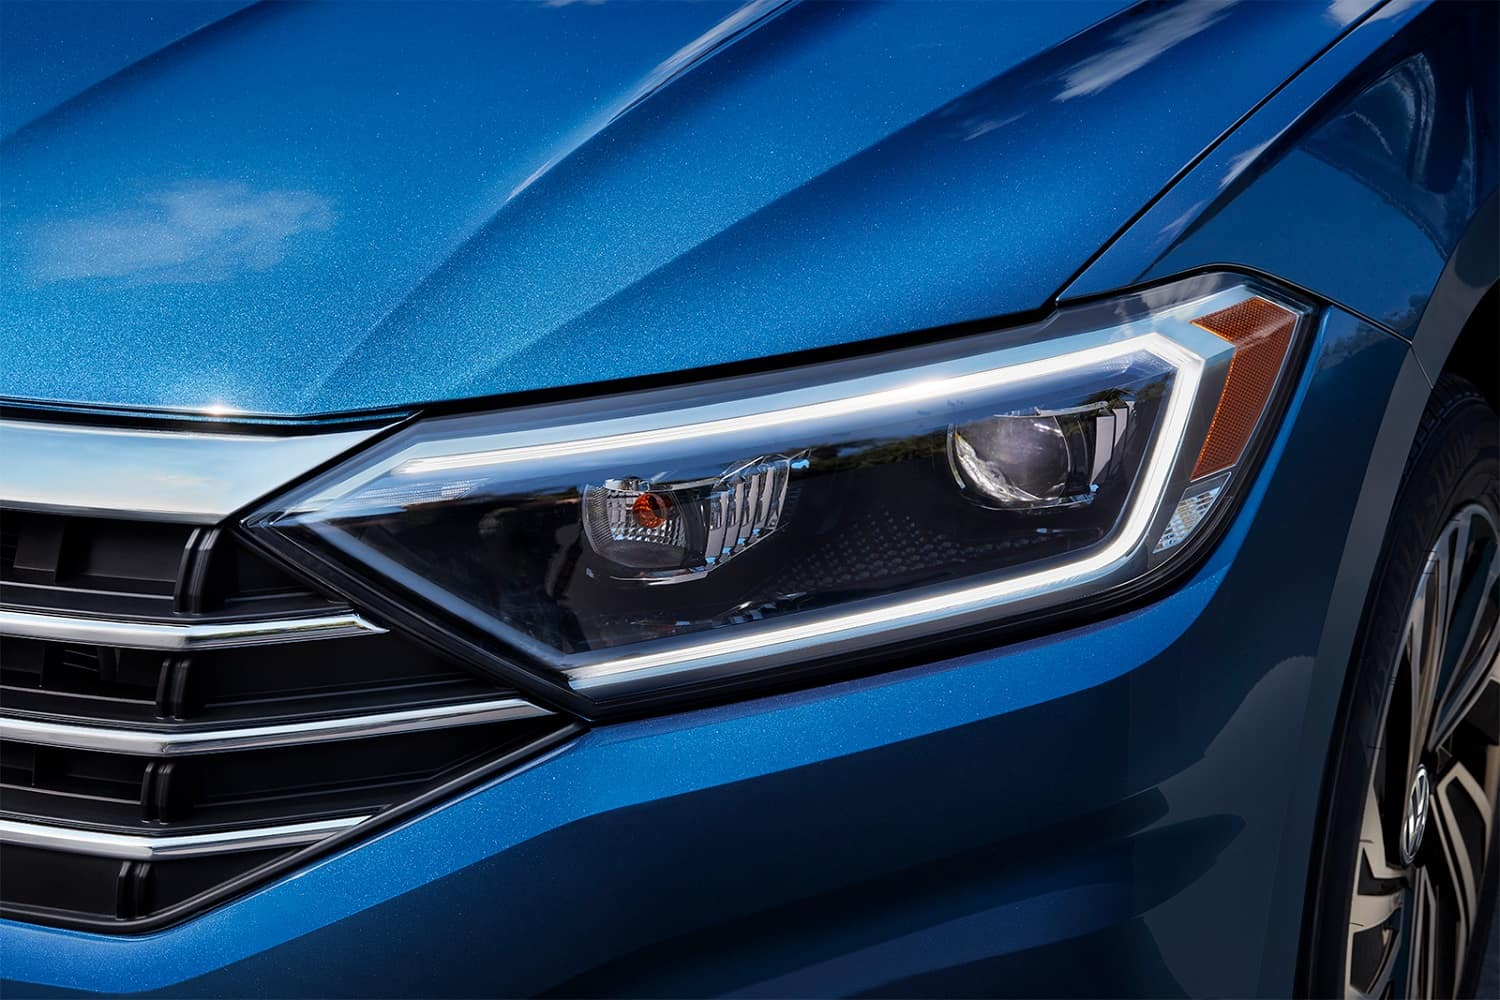 2019 Jetta Silk Blue Metallic